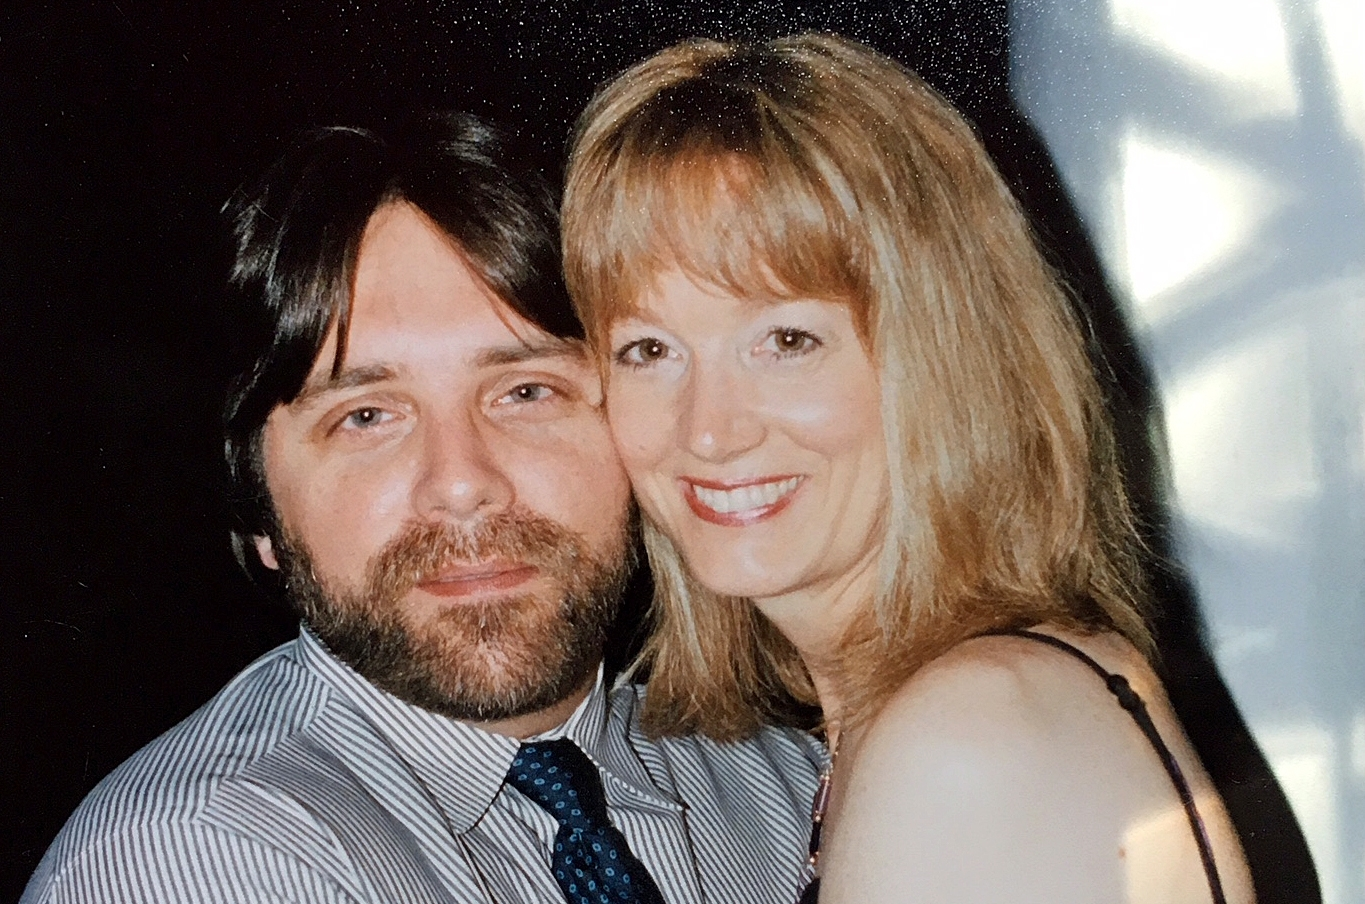 Raniere and Barbara Bouchey broke up in 2008. Her exit from NXIVM in 2009 was followed by years of litigation. (Barbara Bouchey)